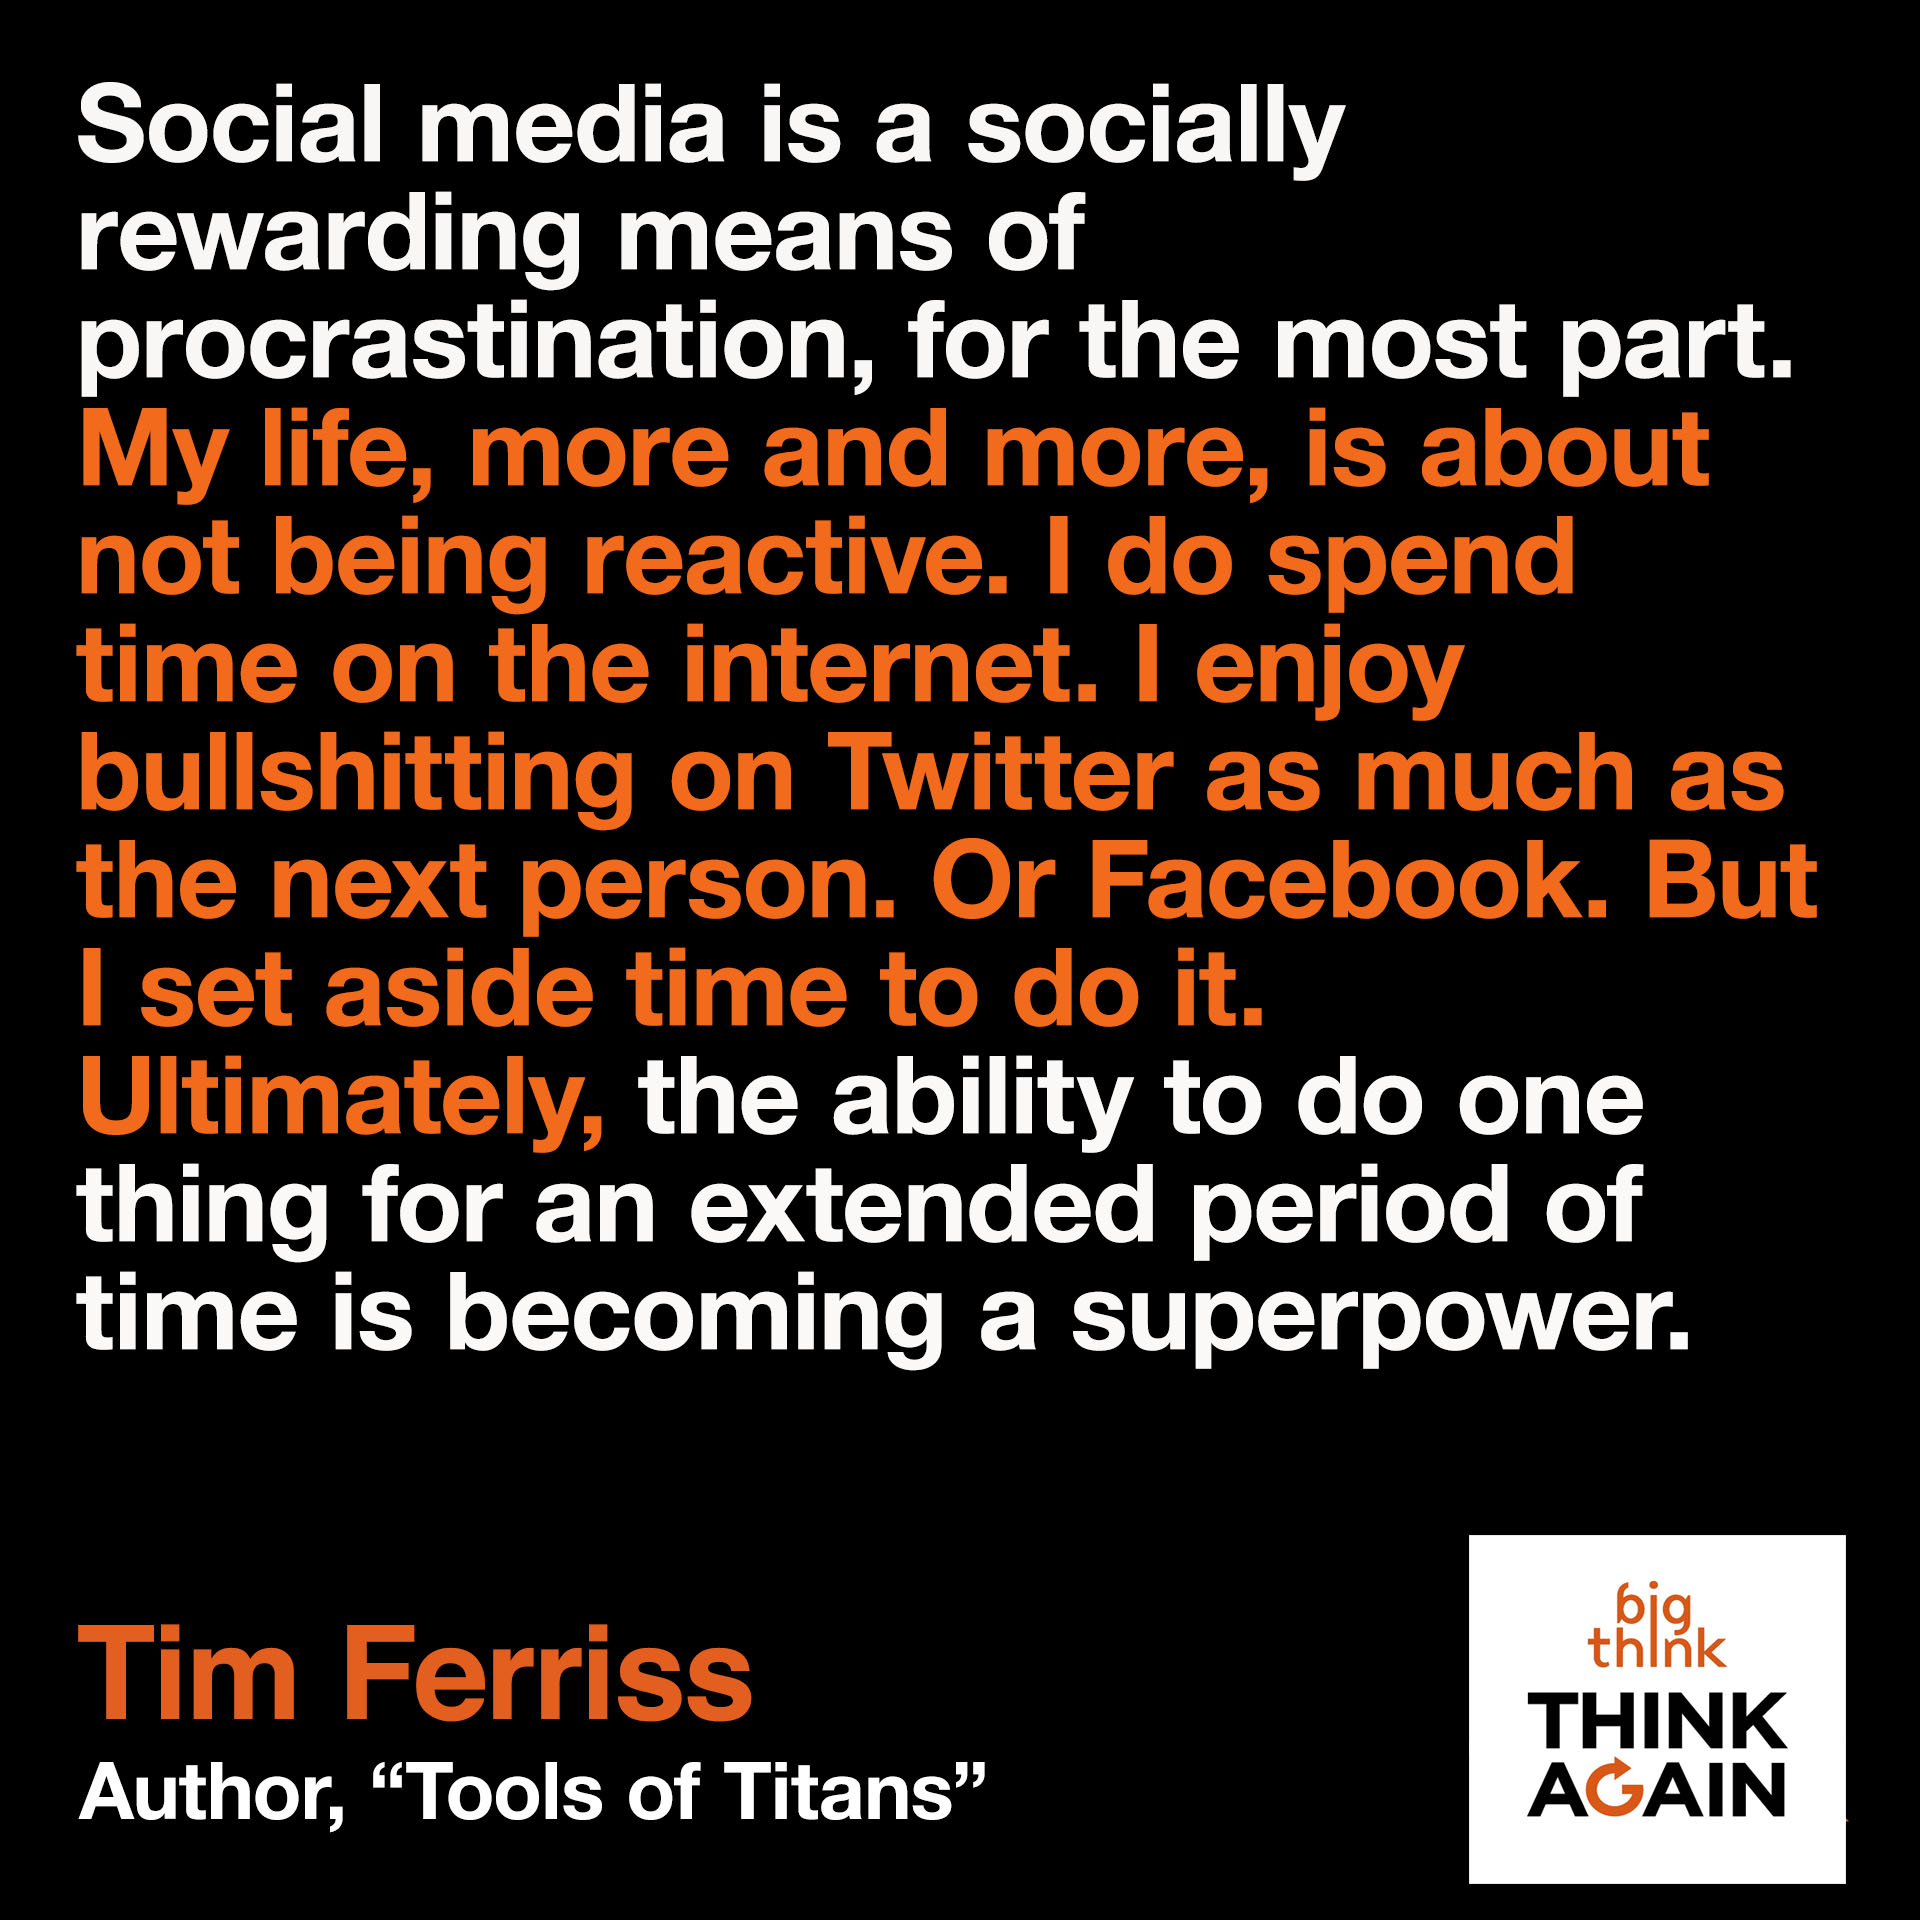 Tim Ferriss Quote: Social media is a socially rewarding means of procrastination, for the most part…My life more and more is about not being reactive. I do spend time on the internet. I enjoy bullshitting on Twitter as much as the next person. Or Facebook. But I set aside time to do it. Ultimately, the ability to single-task––the ability to do one thing for an extended period of time, is becoming a superpower.